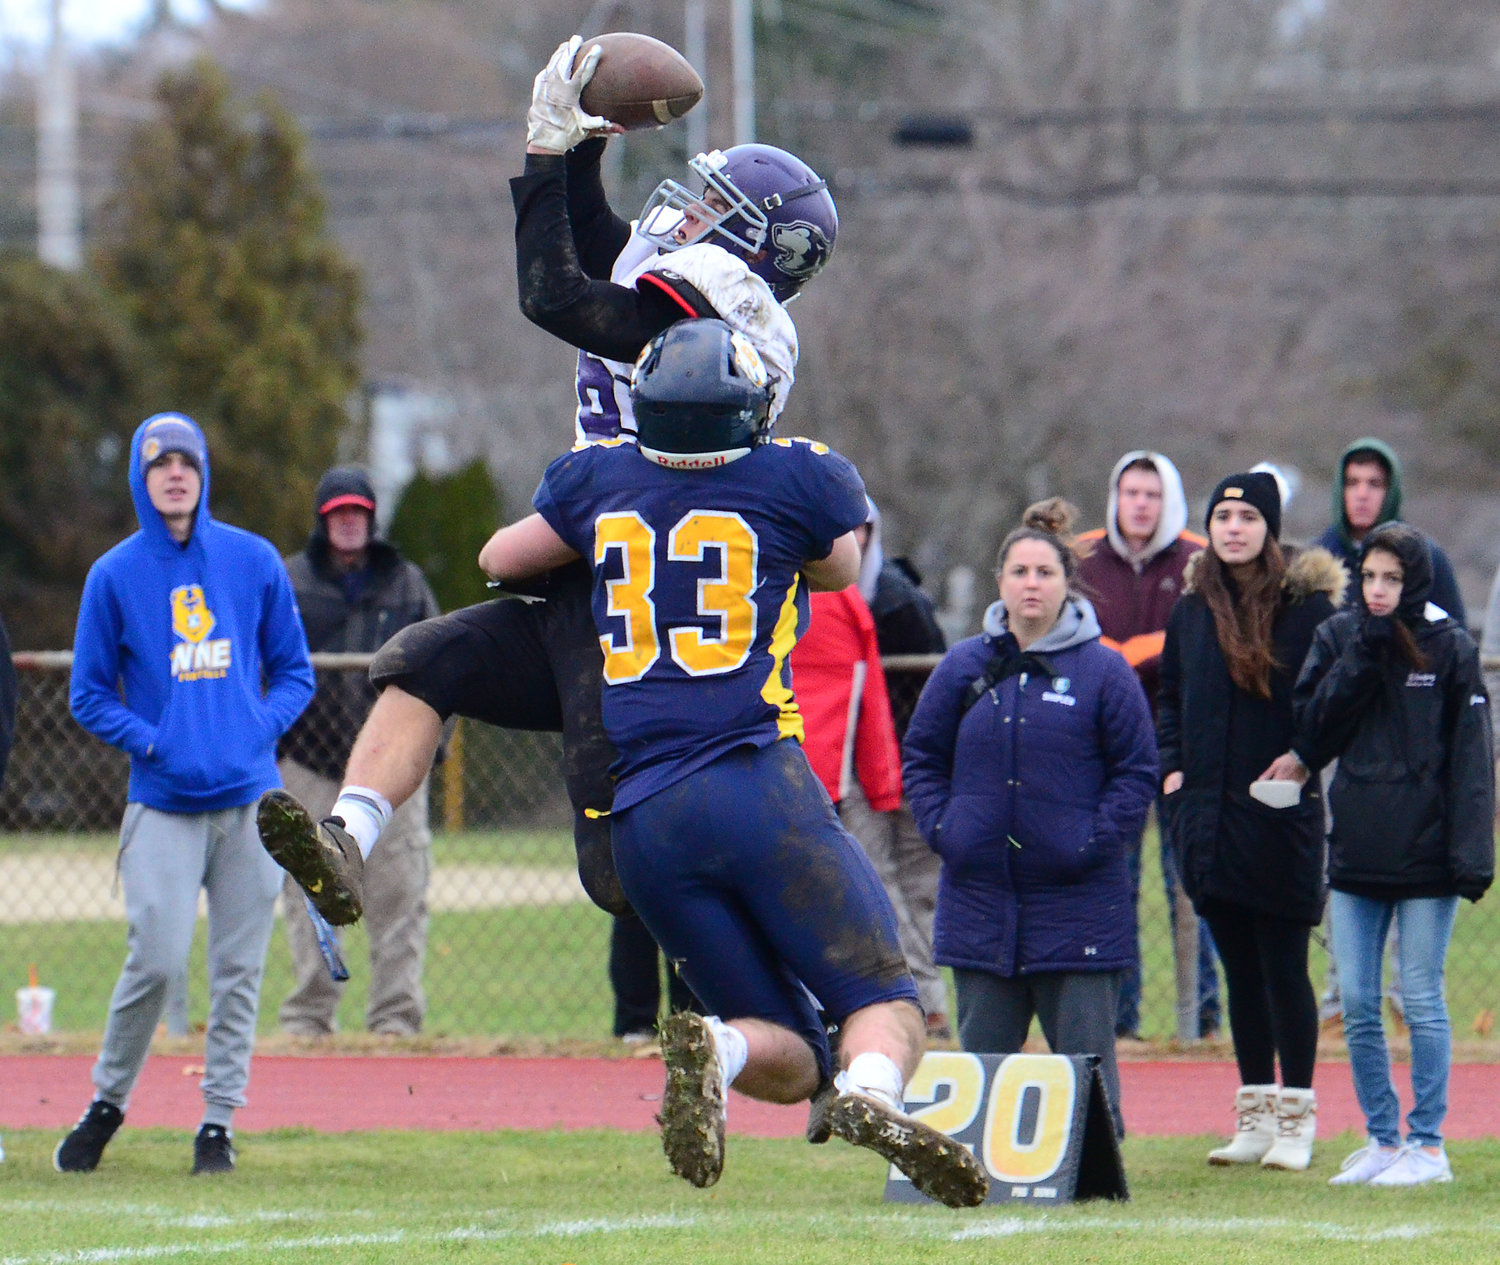 Huskies running back Corey Grifka attempts to catch a pass from Ramaglia in the second half.